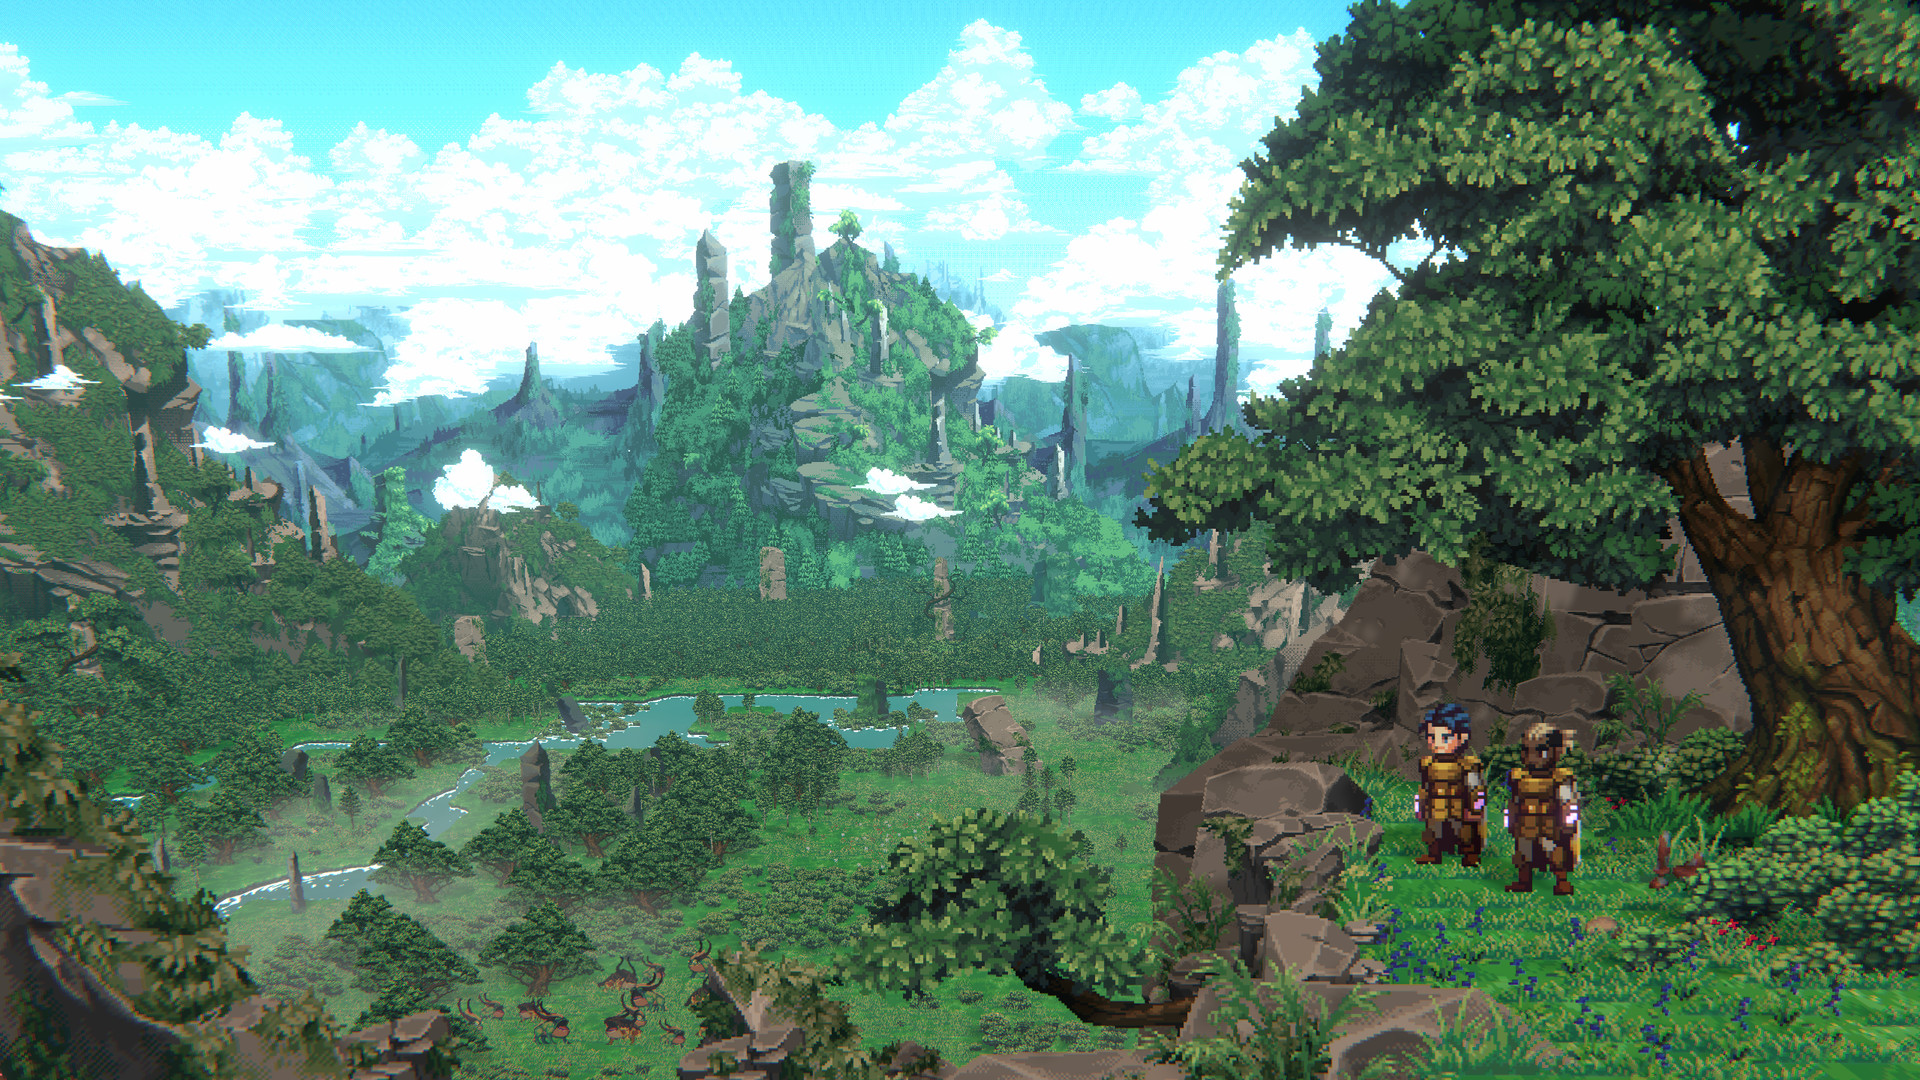 SacriFire screenshot of two characters clad in golden armor looking out at a beautiful green valley.